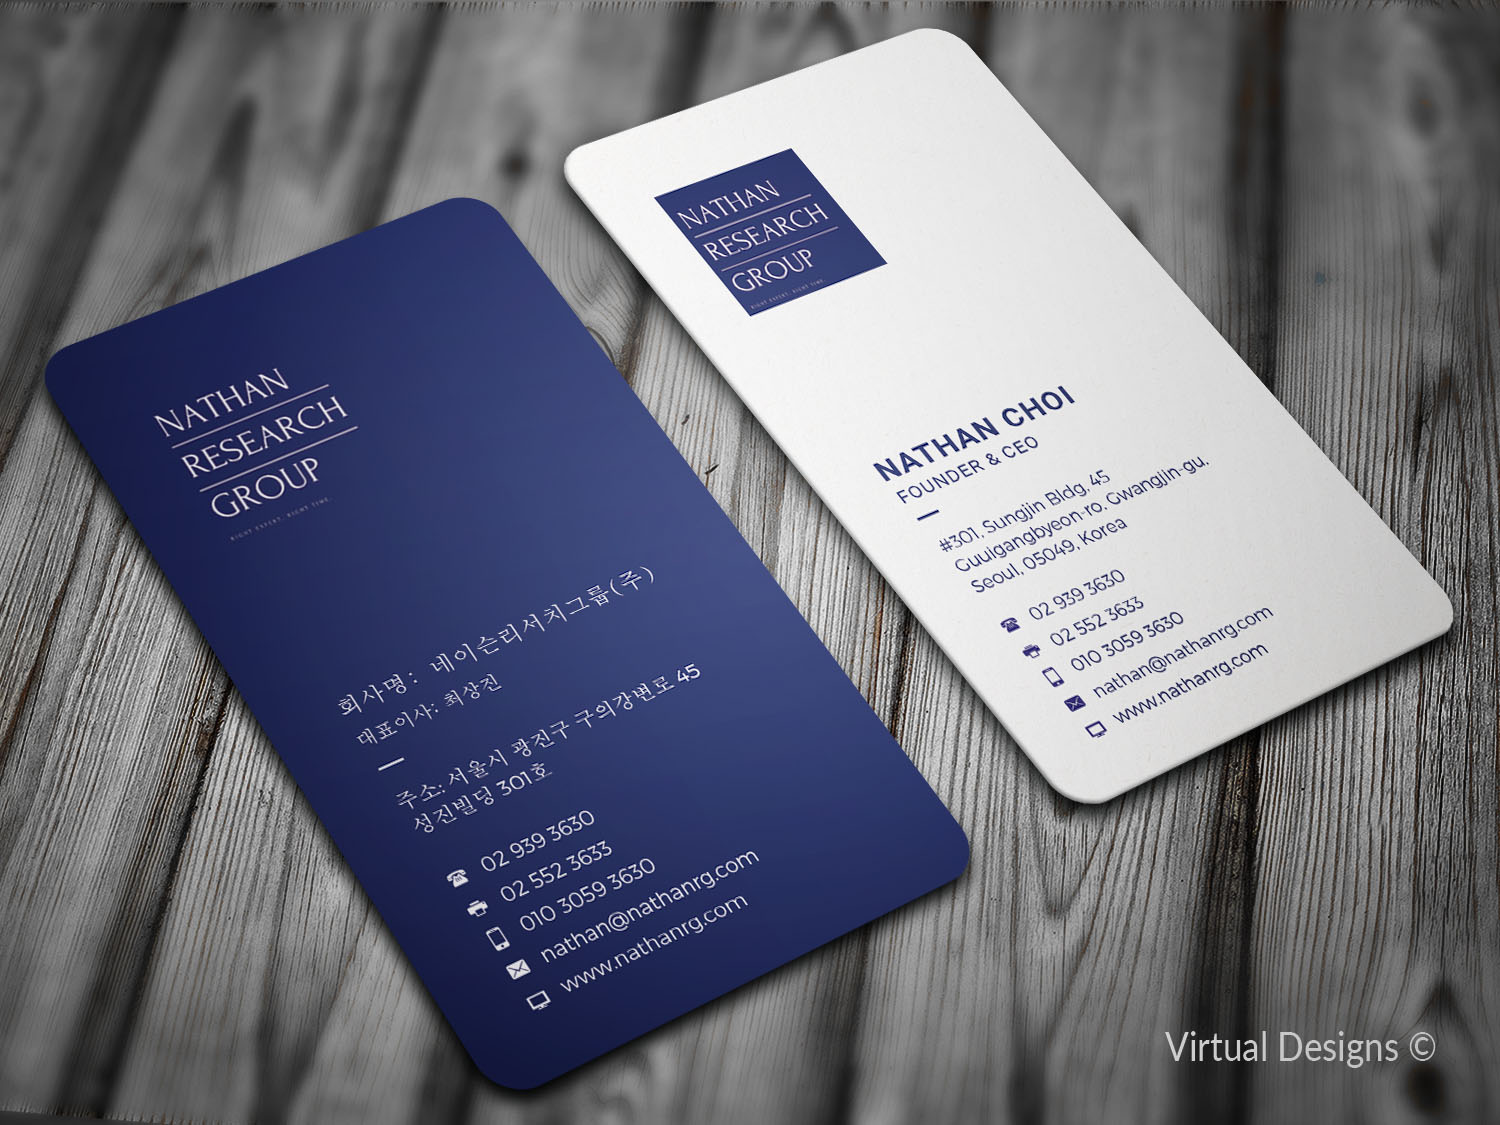 181 elegant business card designs recruitment business card design business card design by virtual designs for nathan research group inc design reheart Images